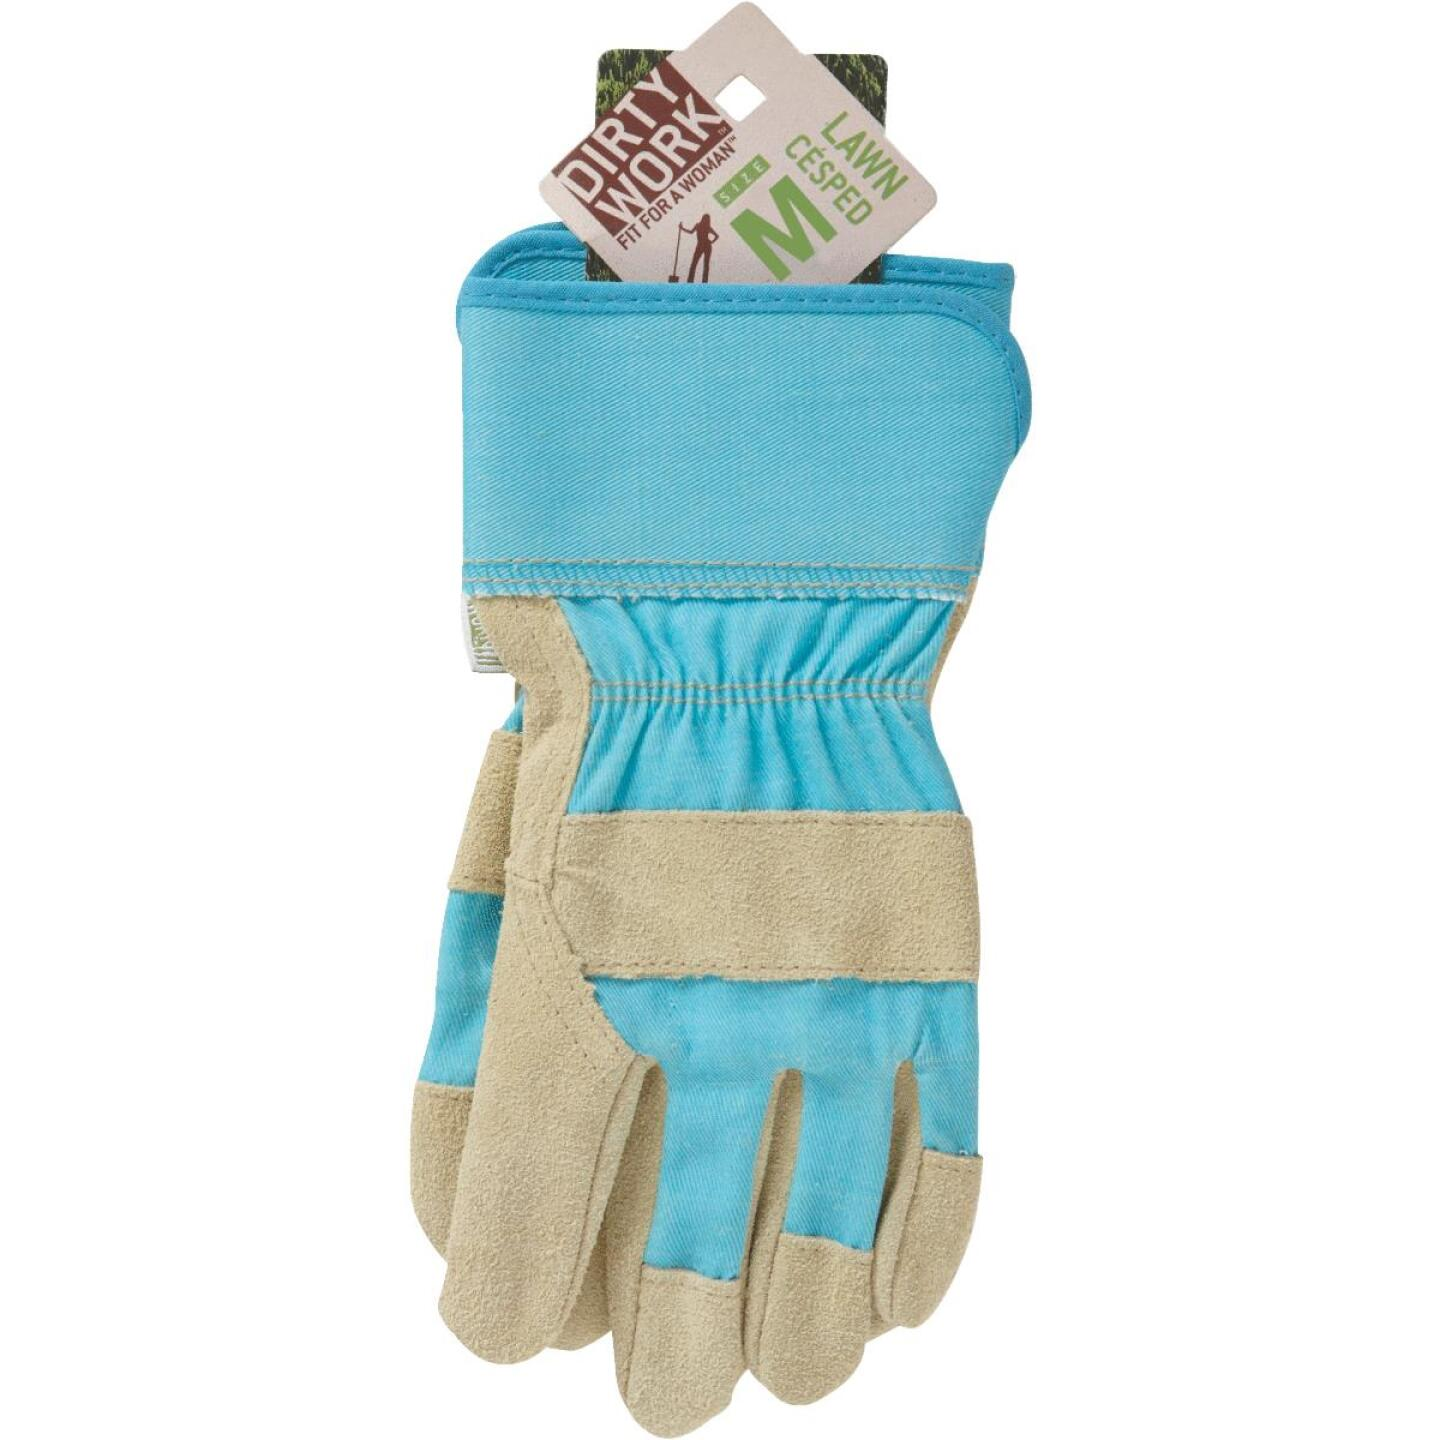 West Chester Protective Gear Dirty Work Women's Medium Leather Work Glove Image 3